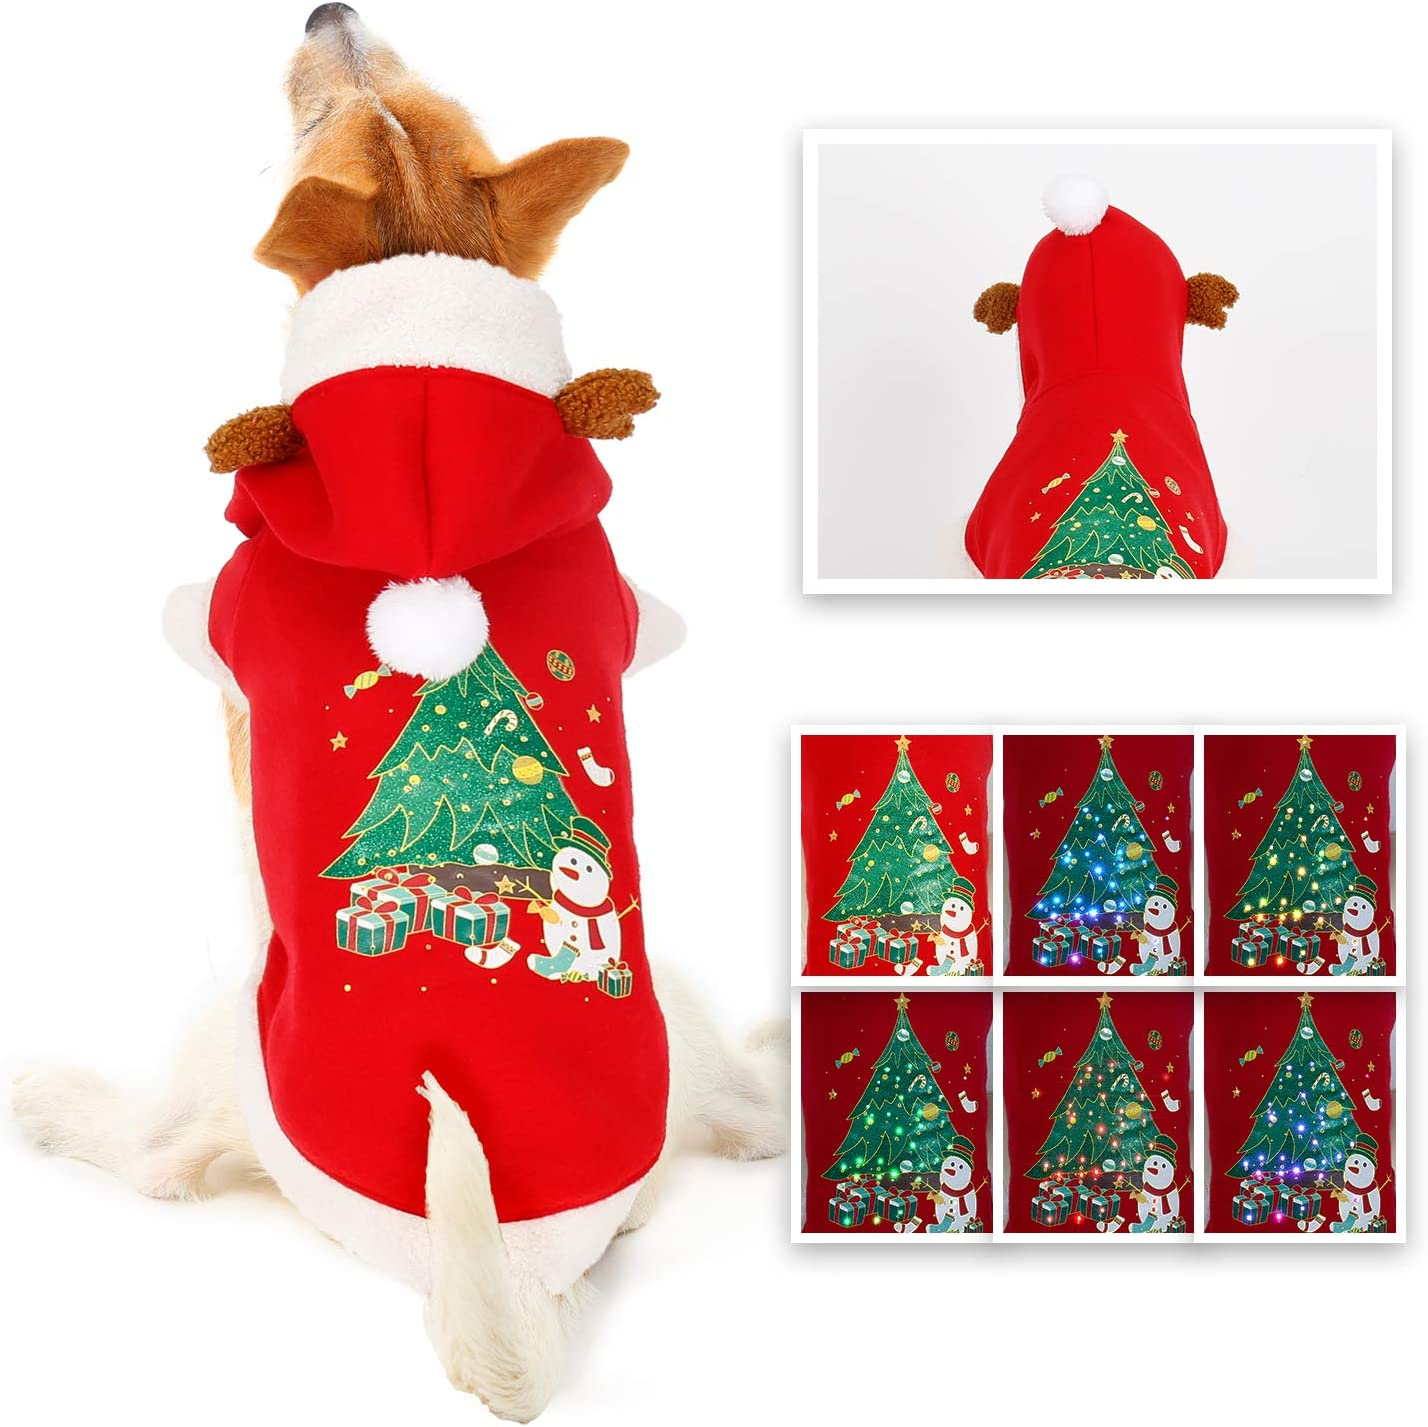 oneisall Dog Sweaters for Christmas LED Light Up Puppy Clothes Hoodie Costume Shirts Holiday Festival Party Outfit for Small Medium Large Dogs